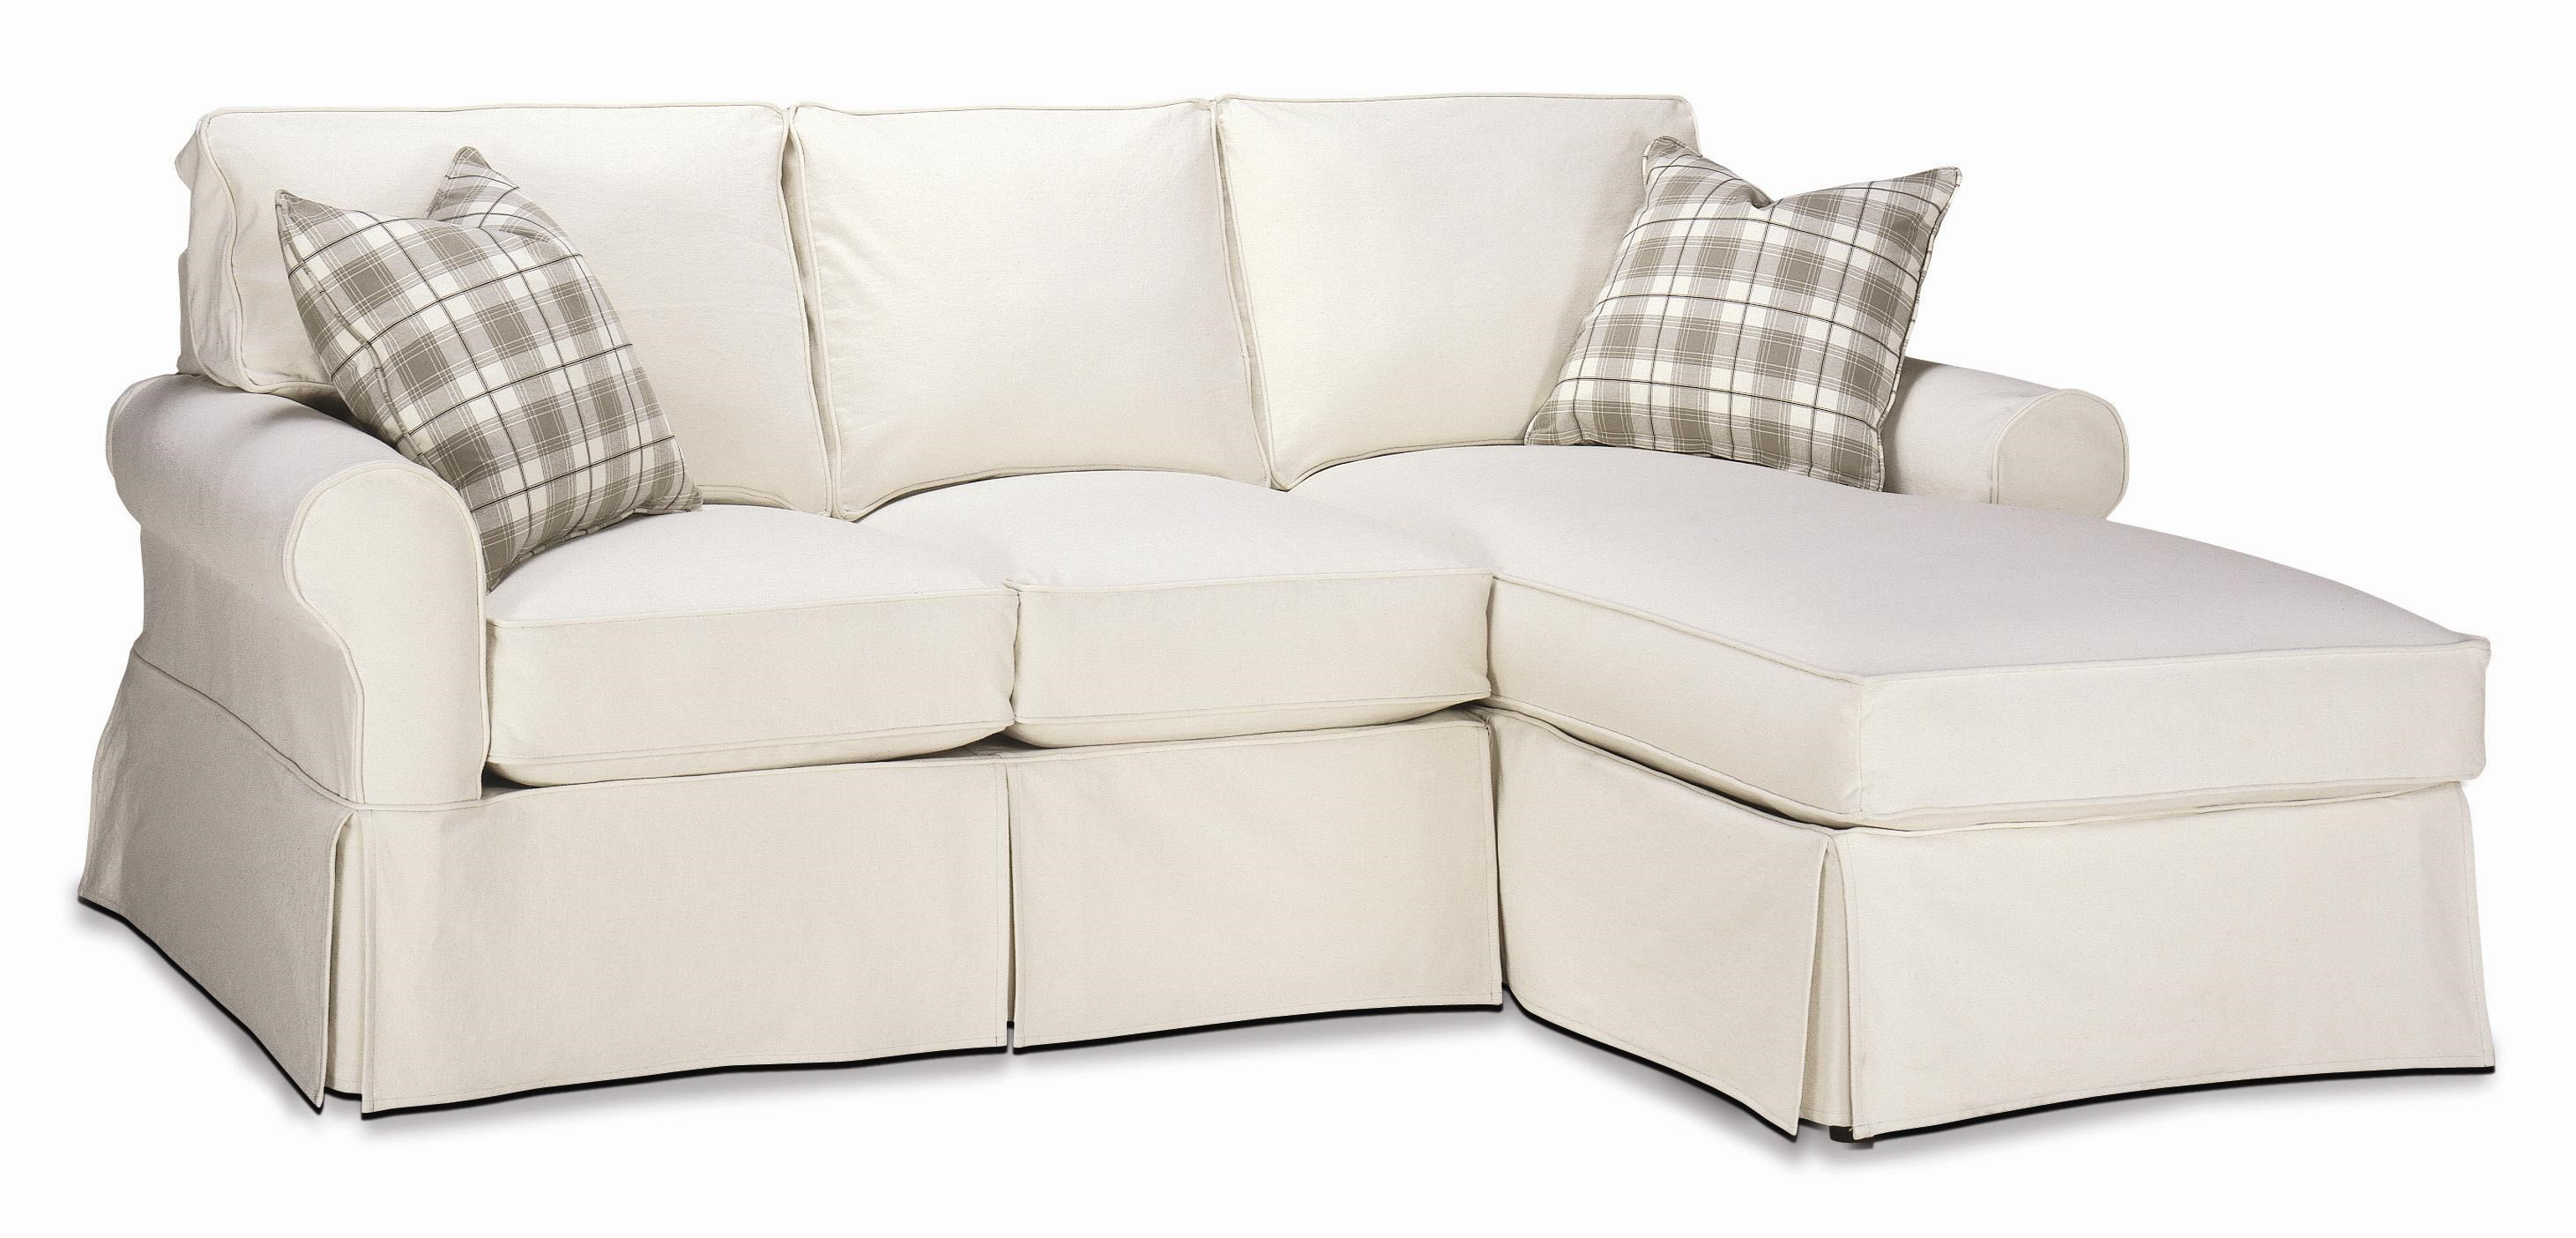 rowe masquerade sectional sofa small double bed argos casual style - belfort ...